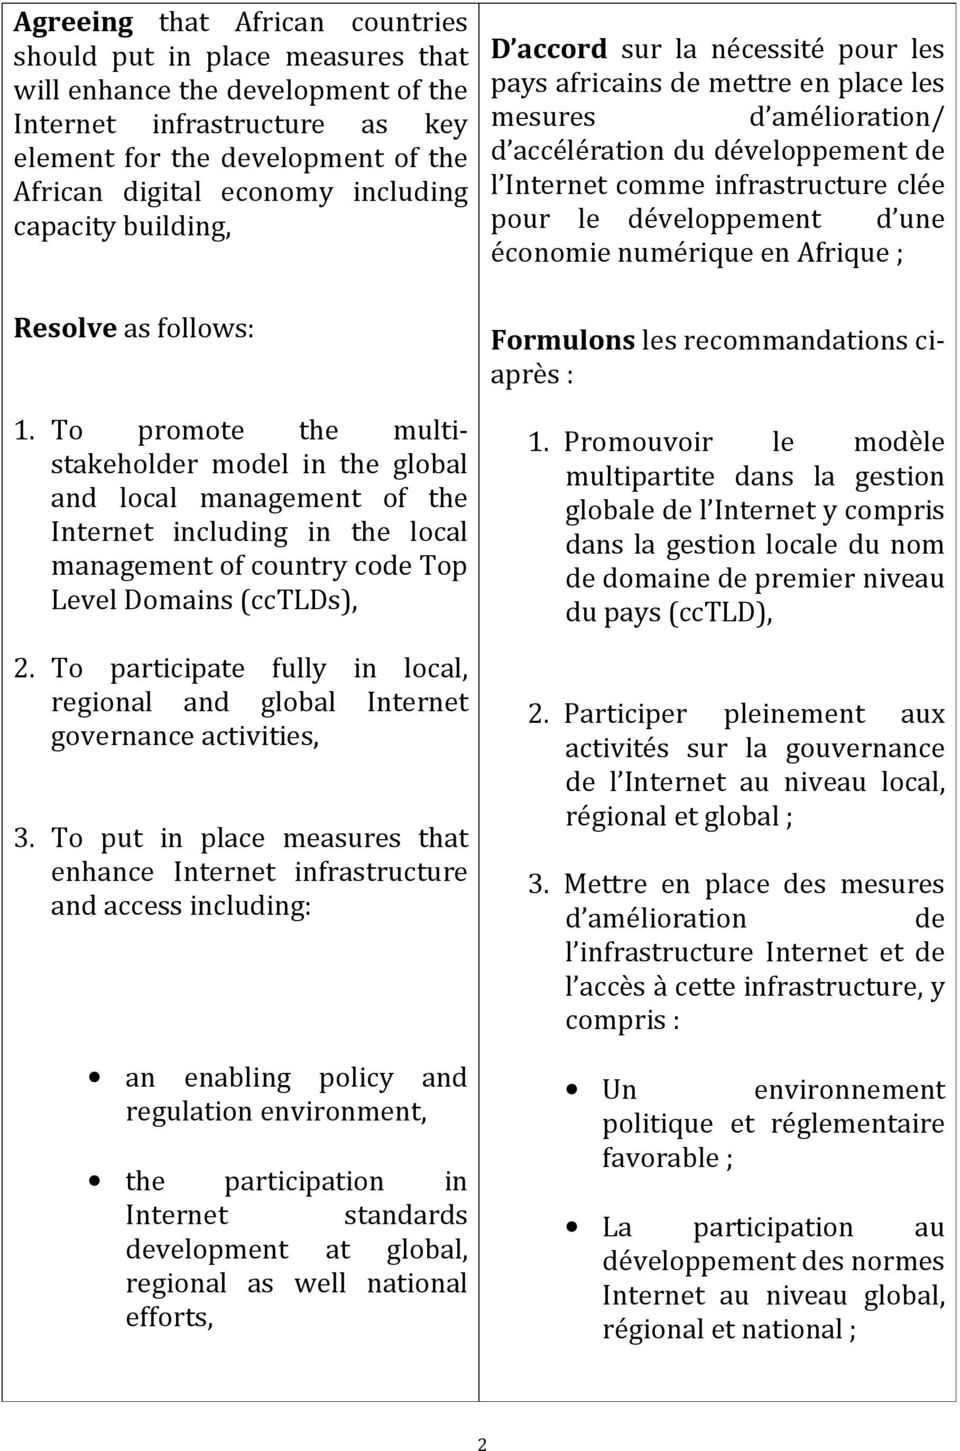 To promote the multistakeholder model in the global and local management of the Internet including in the local management of country code Top Level Domains (cctlds), 2.